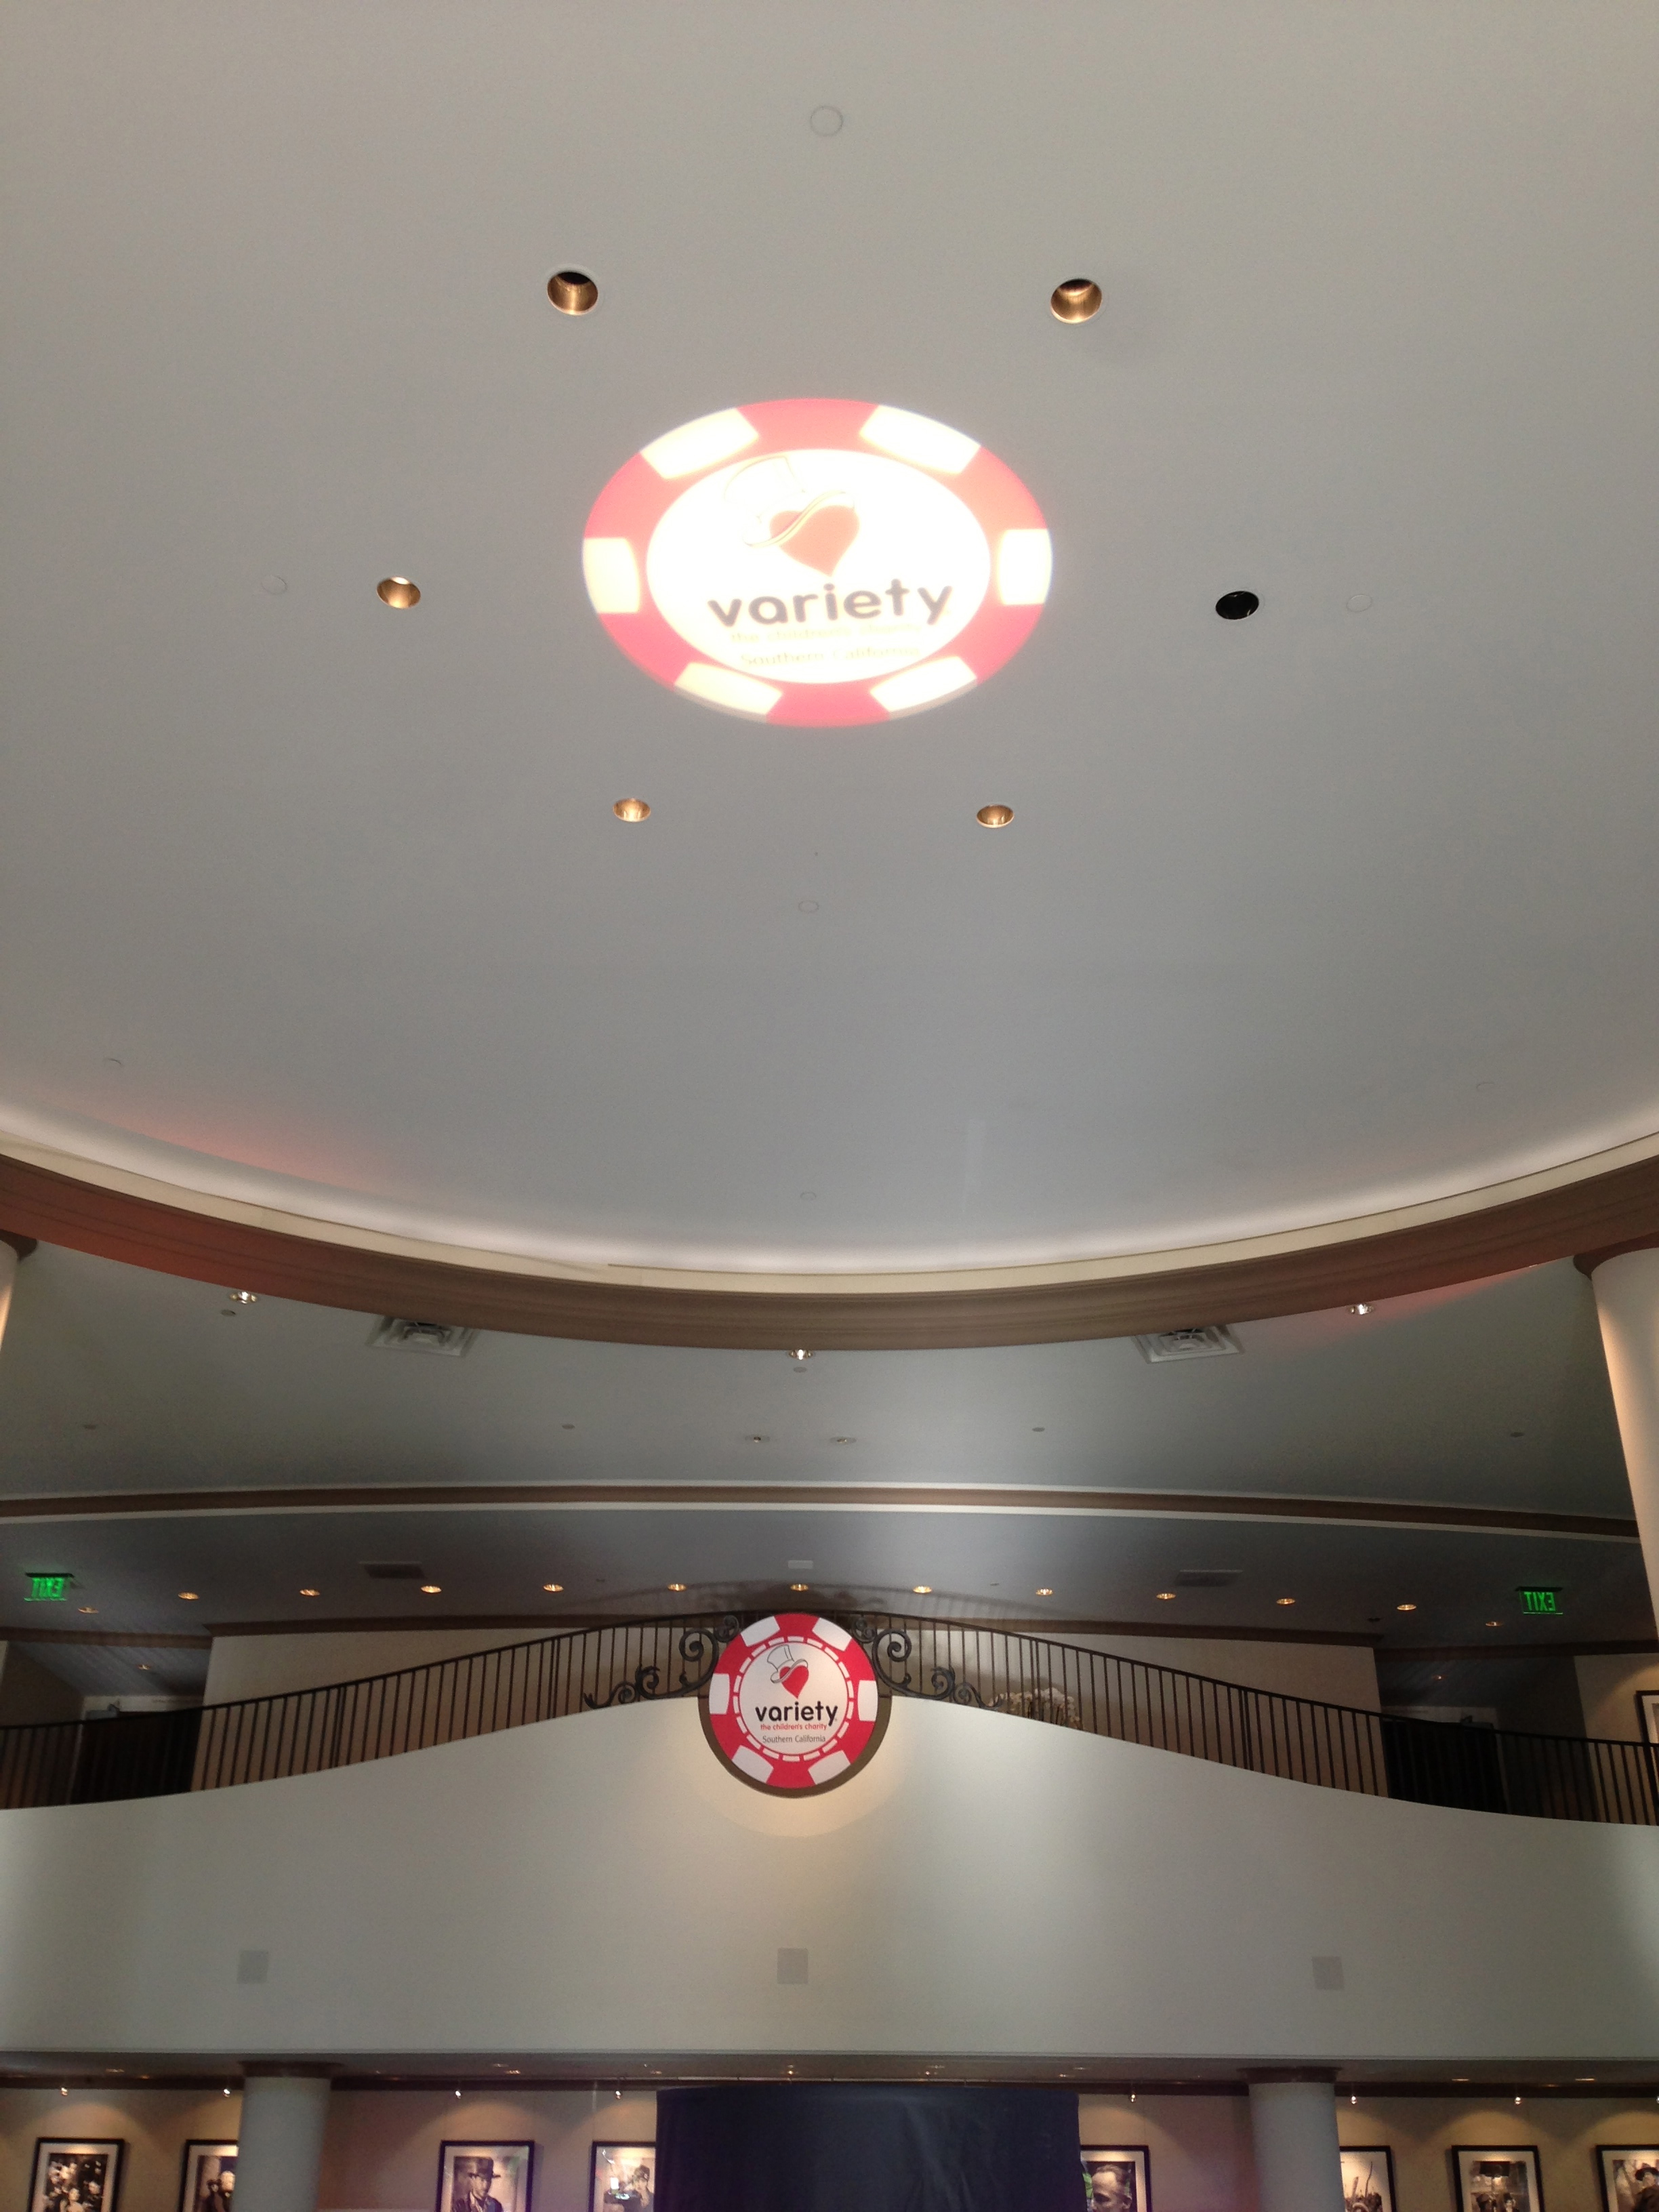 Olson Visual supplied the gobo light projection of the Variety Poker Night logo on the ceiling and the official logo emblem below it.